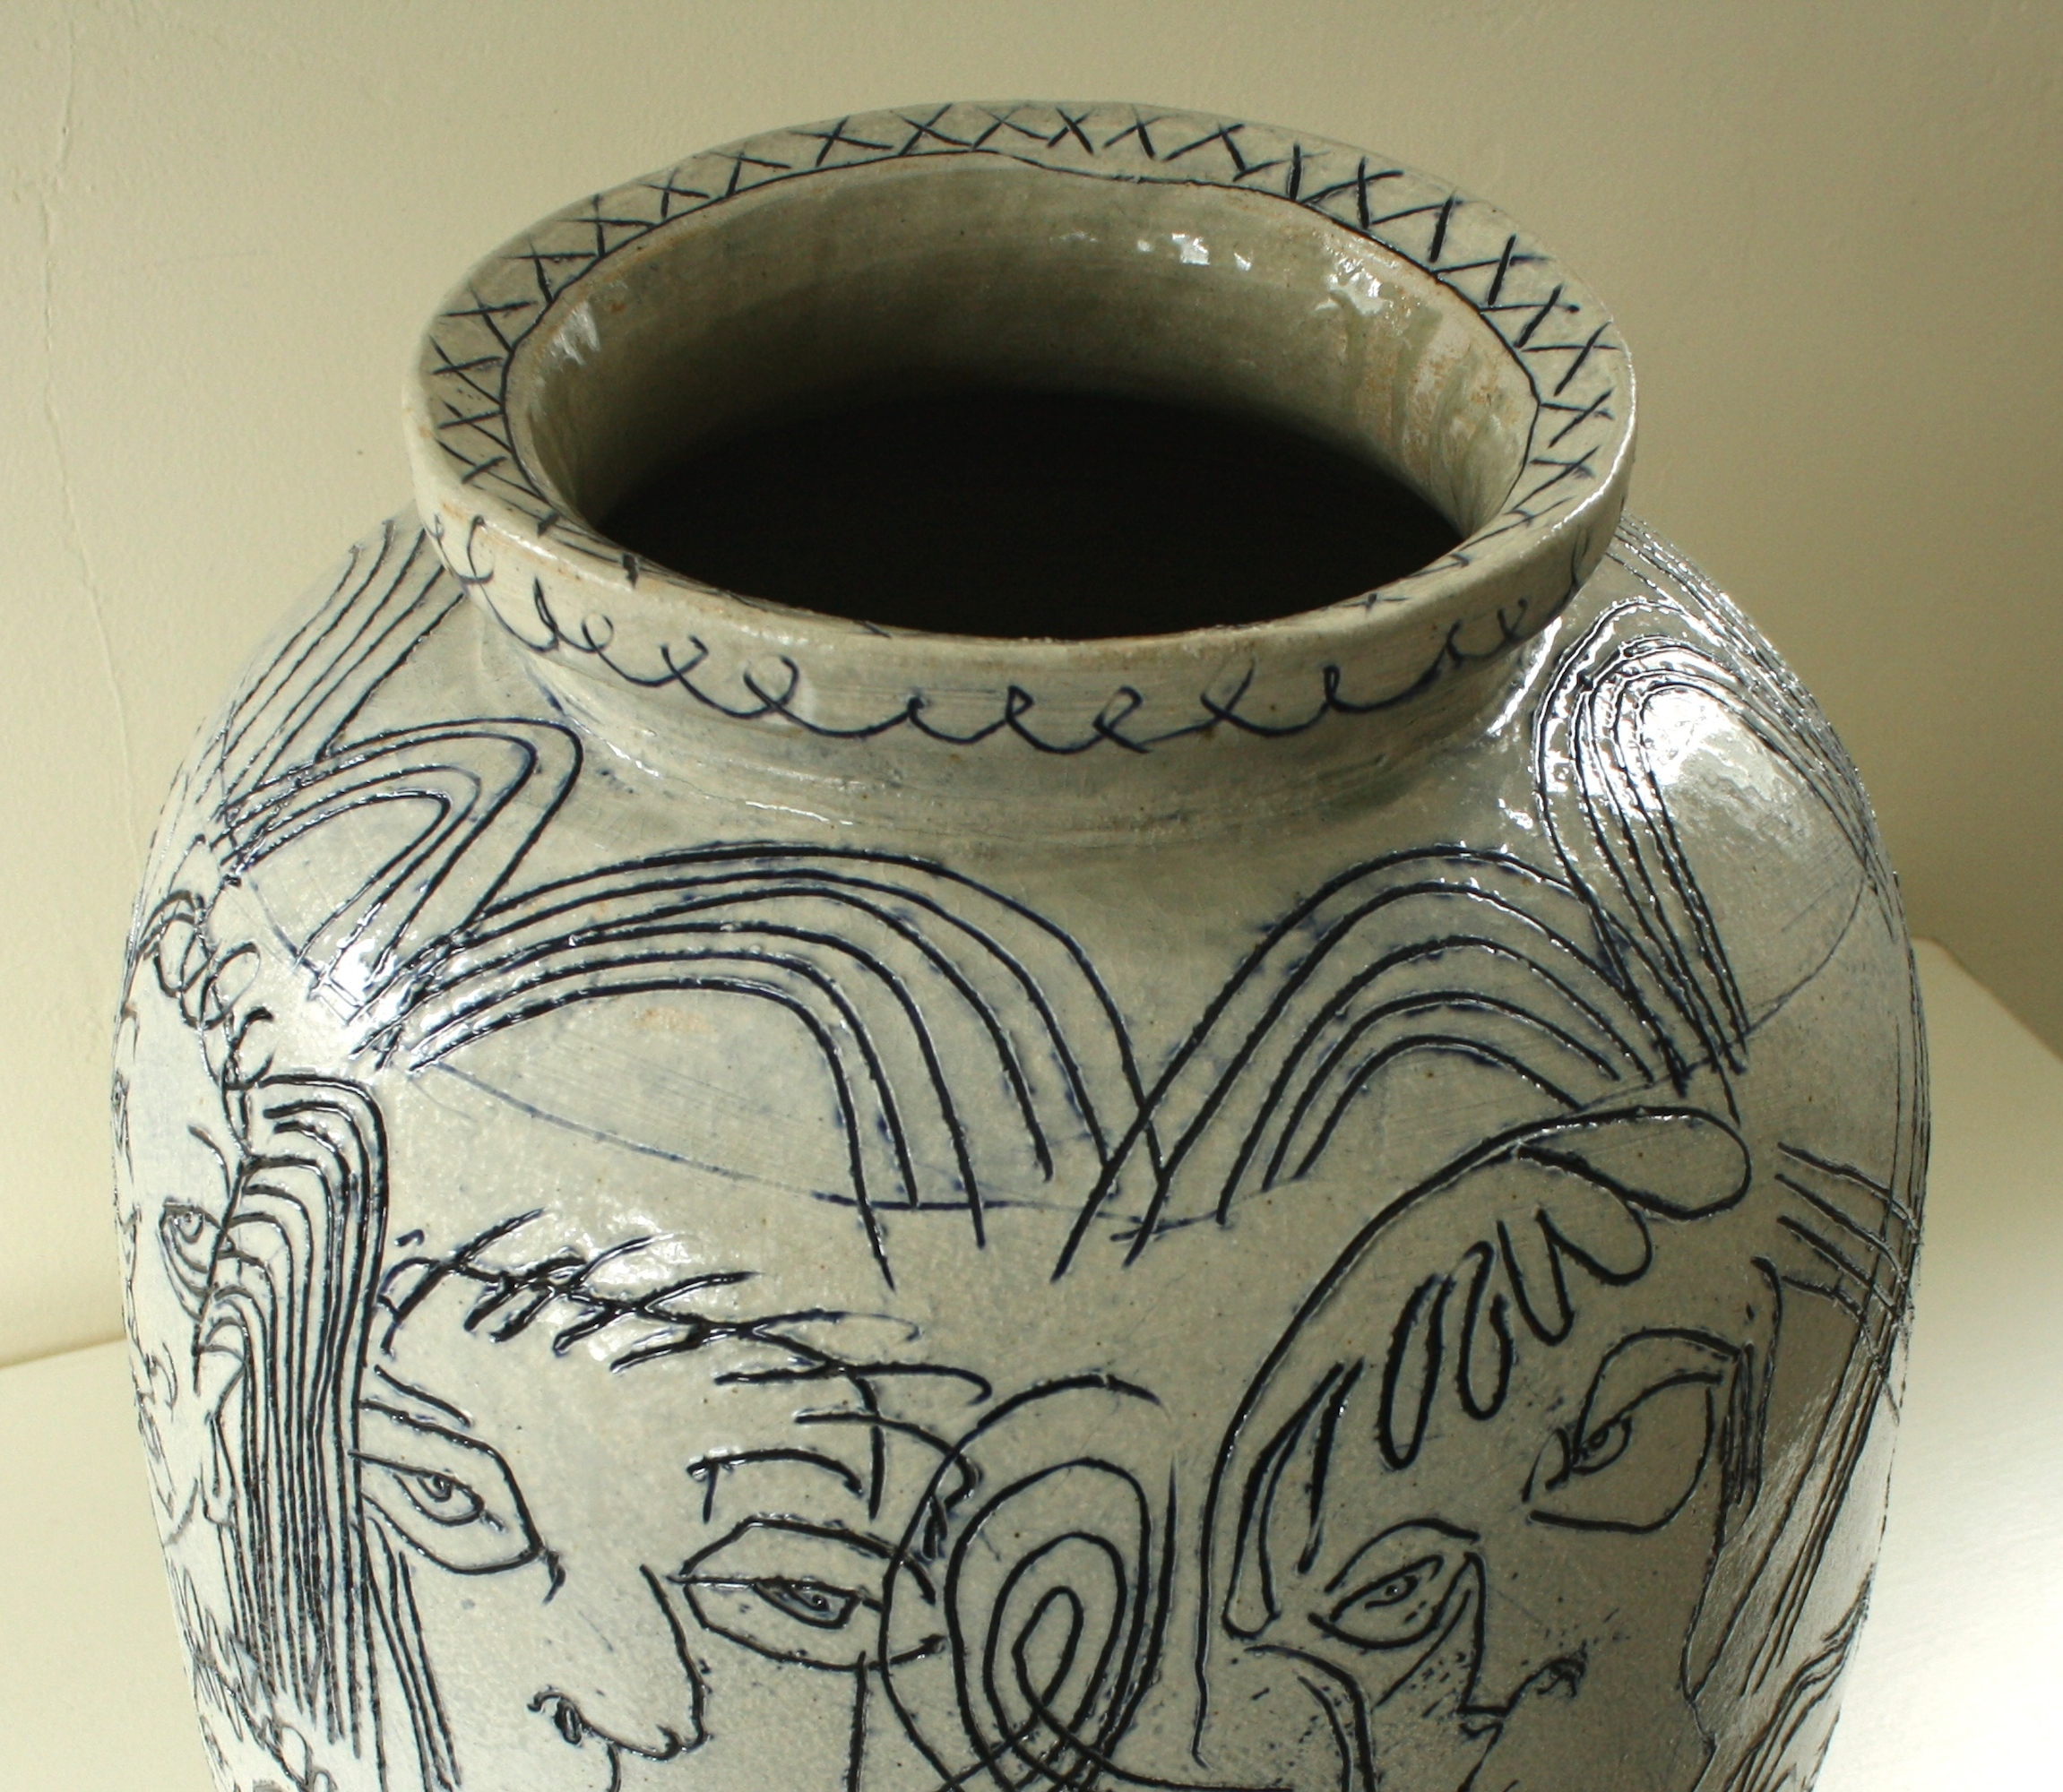 Drawn Vase, detail